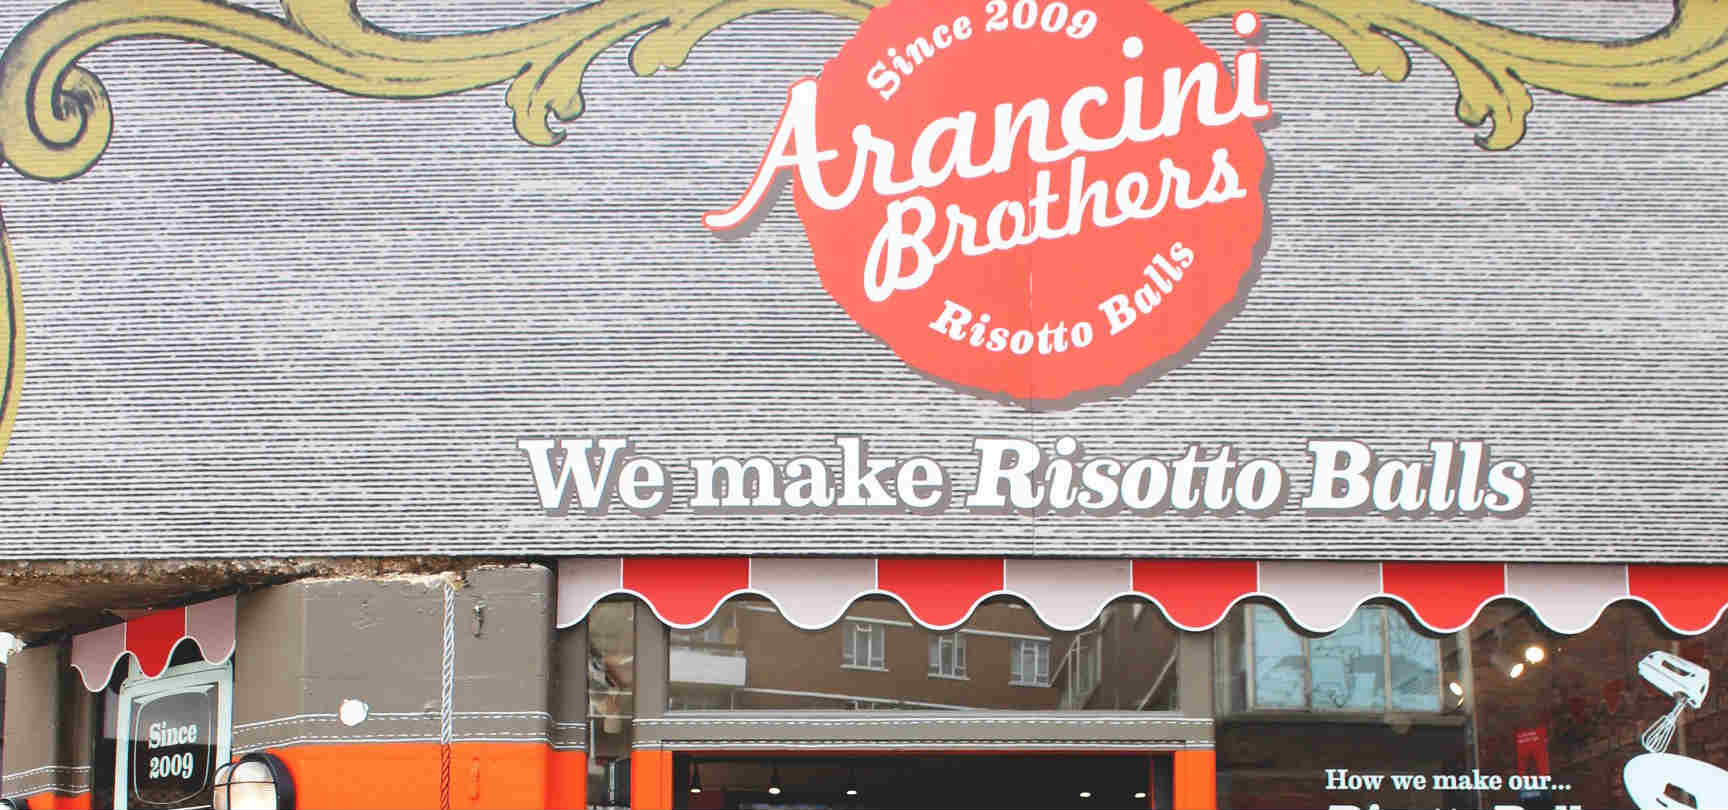 Arancini Brothers to stay vegan